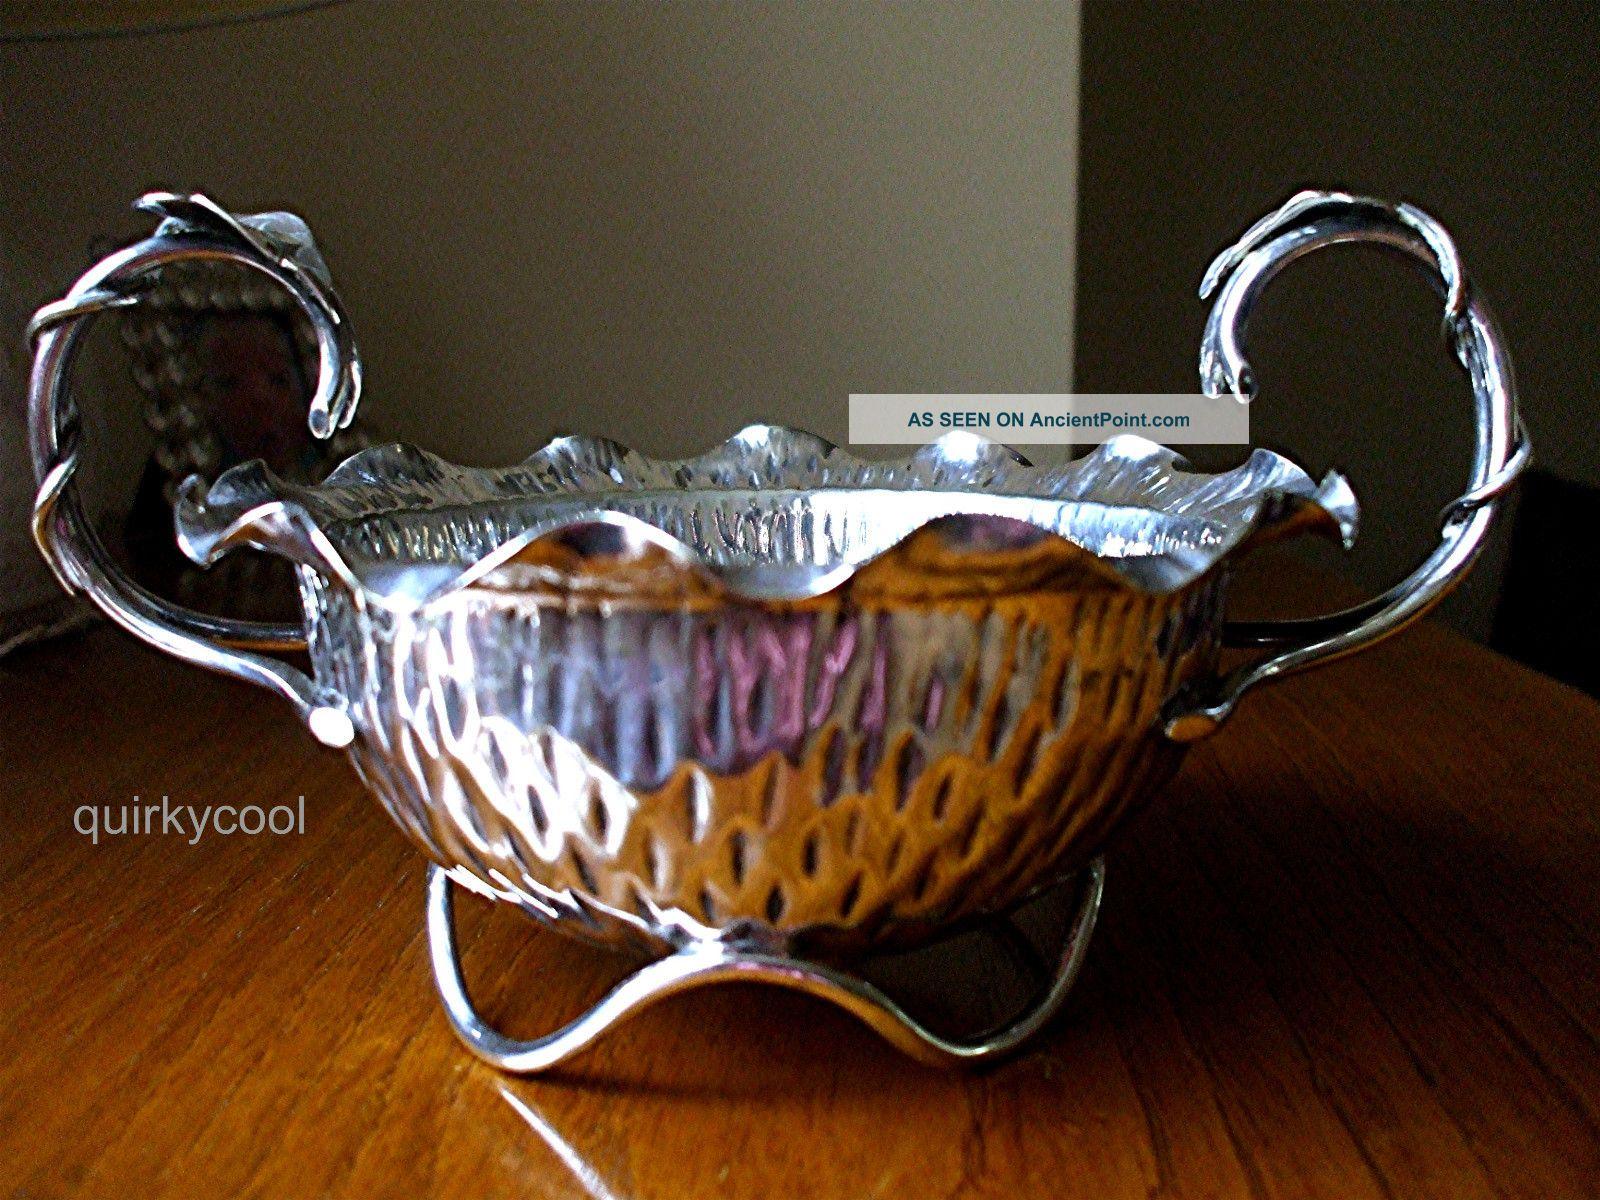 Hukin & Heath Silver Plated Footed Bowl - Aesthetic Arts & Crafts C.  1880s Bowls photo